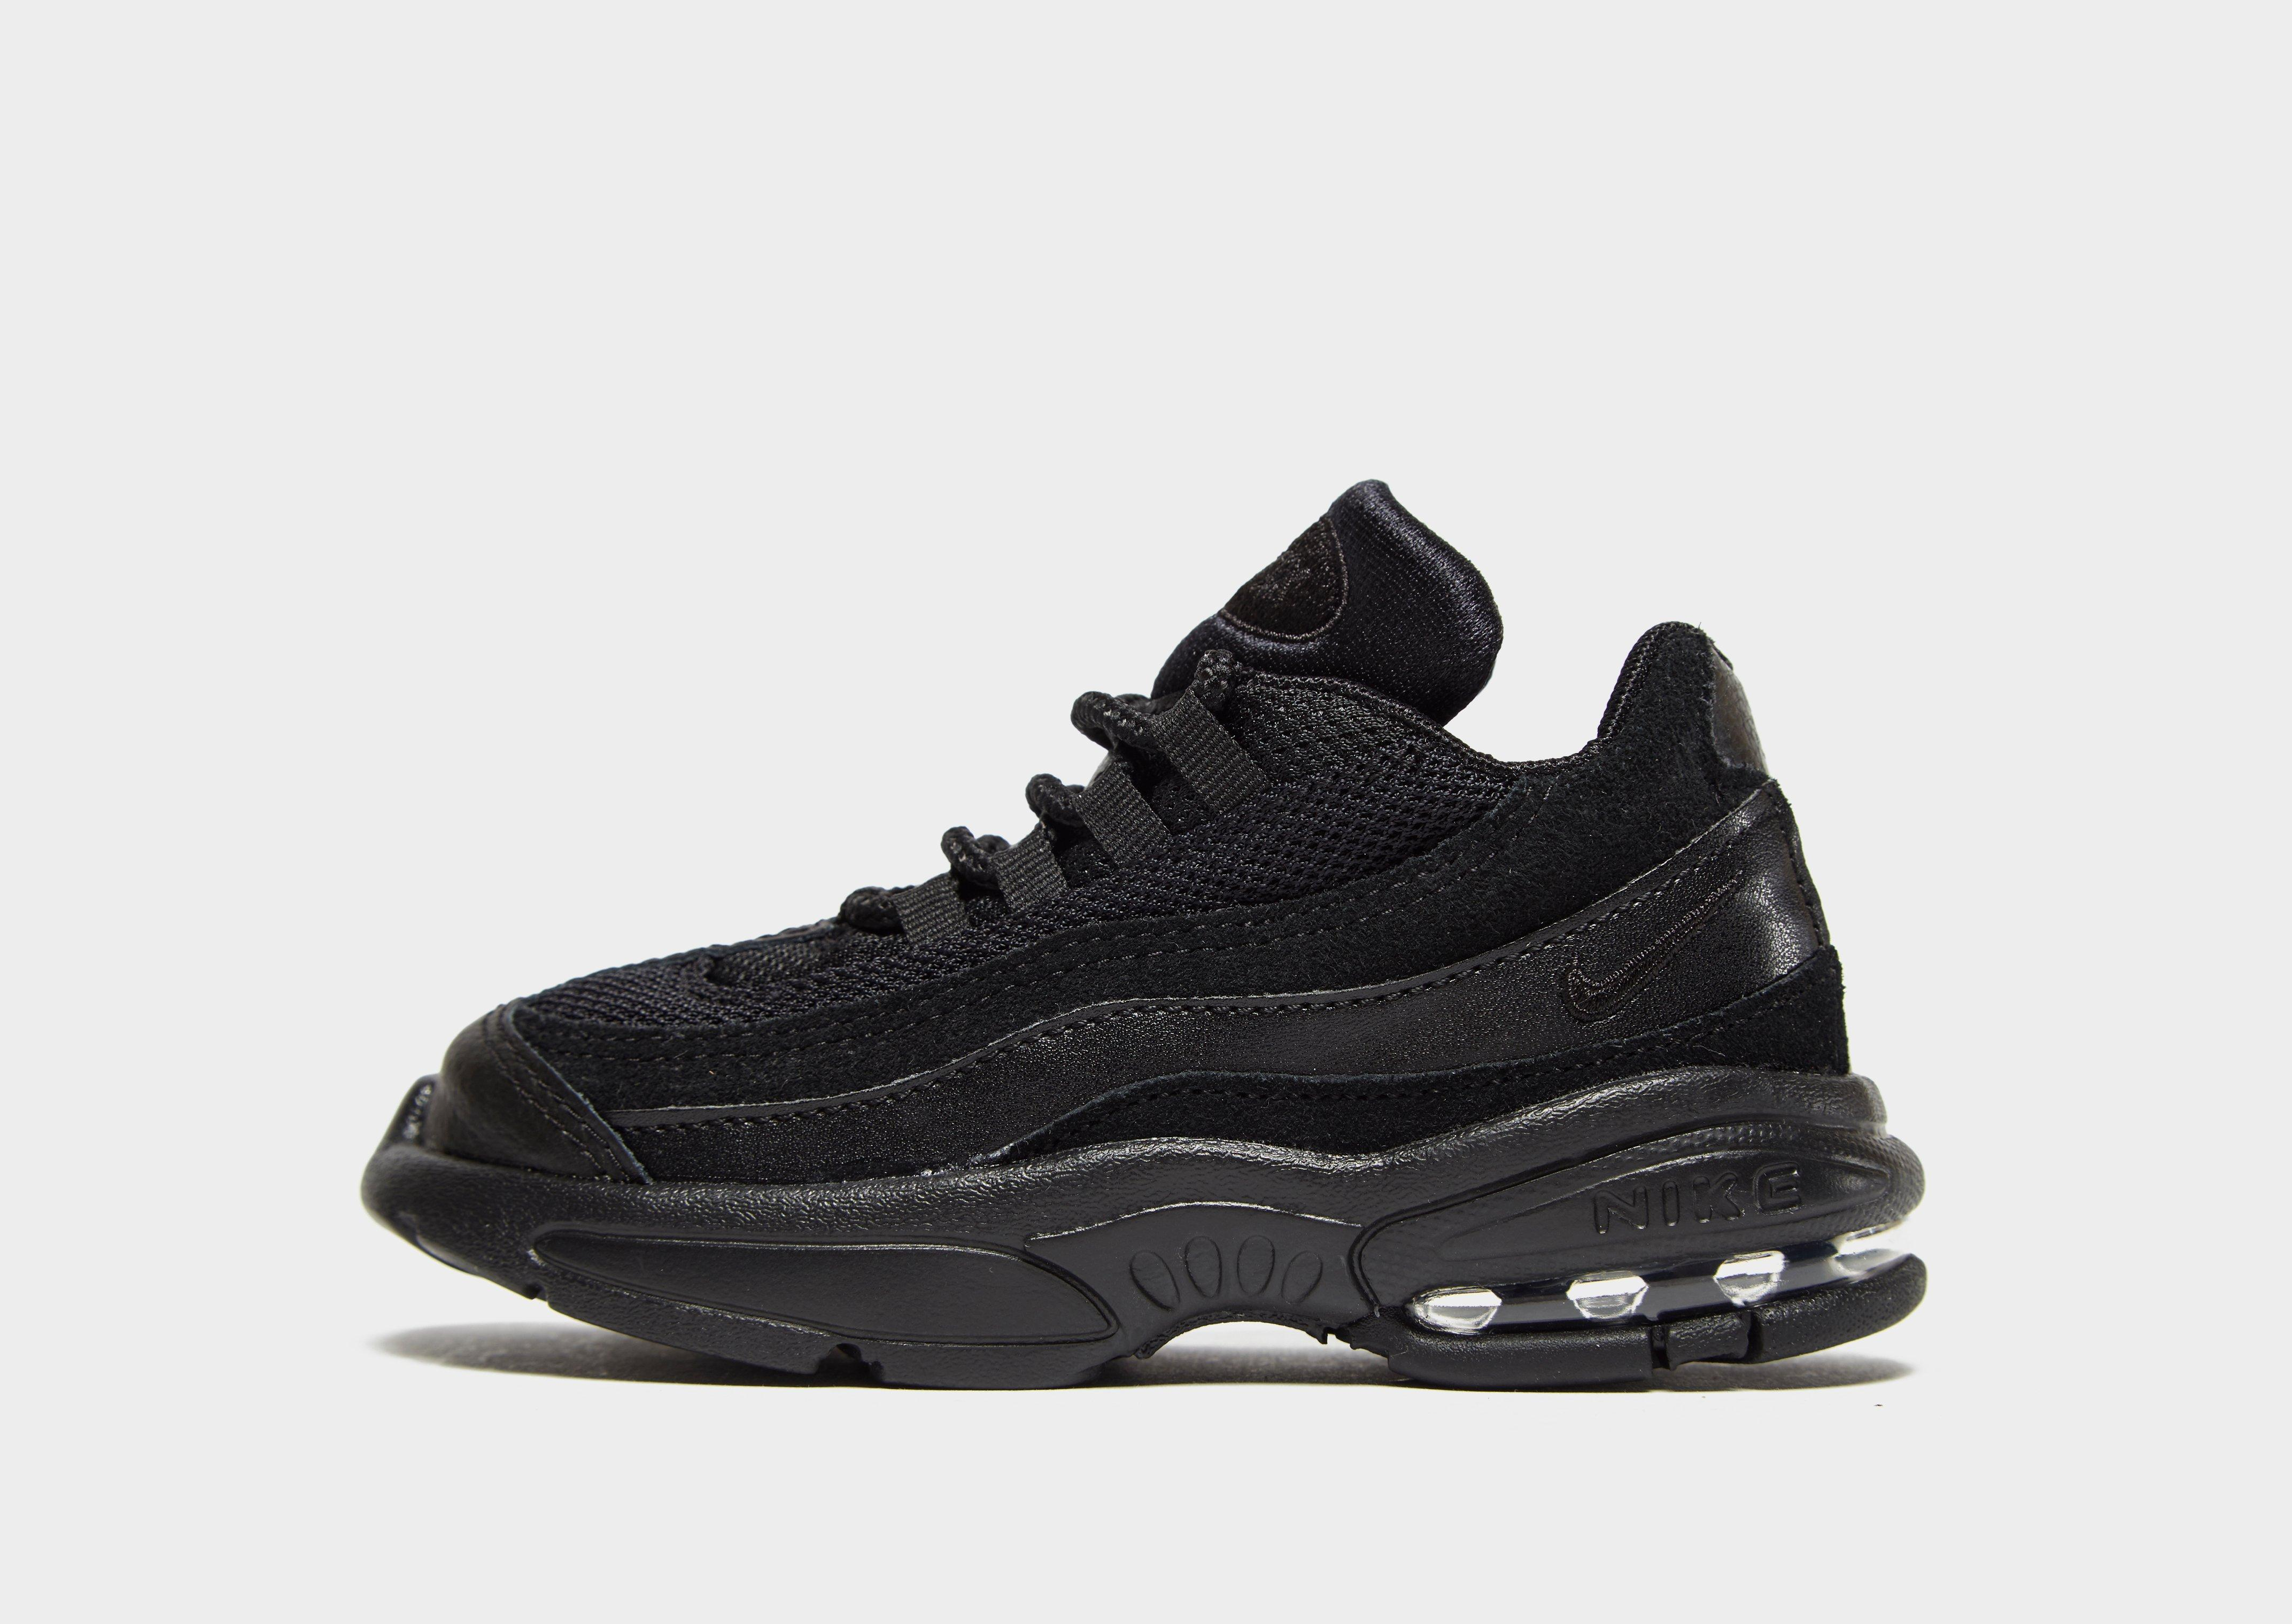 Newborn Shoes Vans Nike Air Max 95 Infant Jd Sports